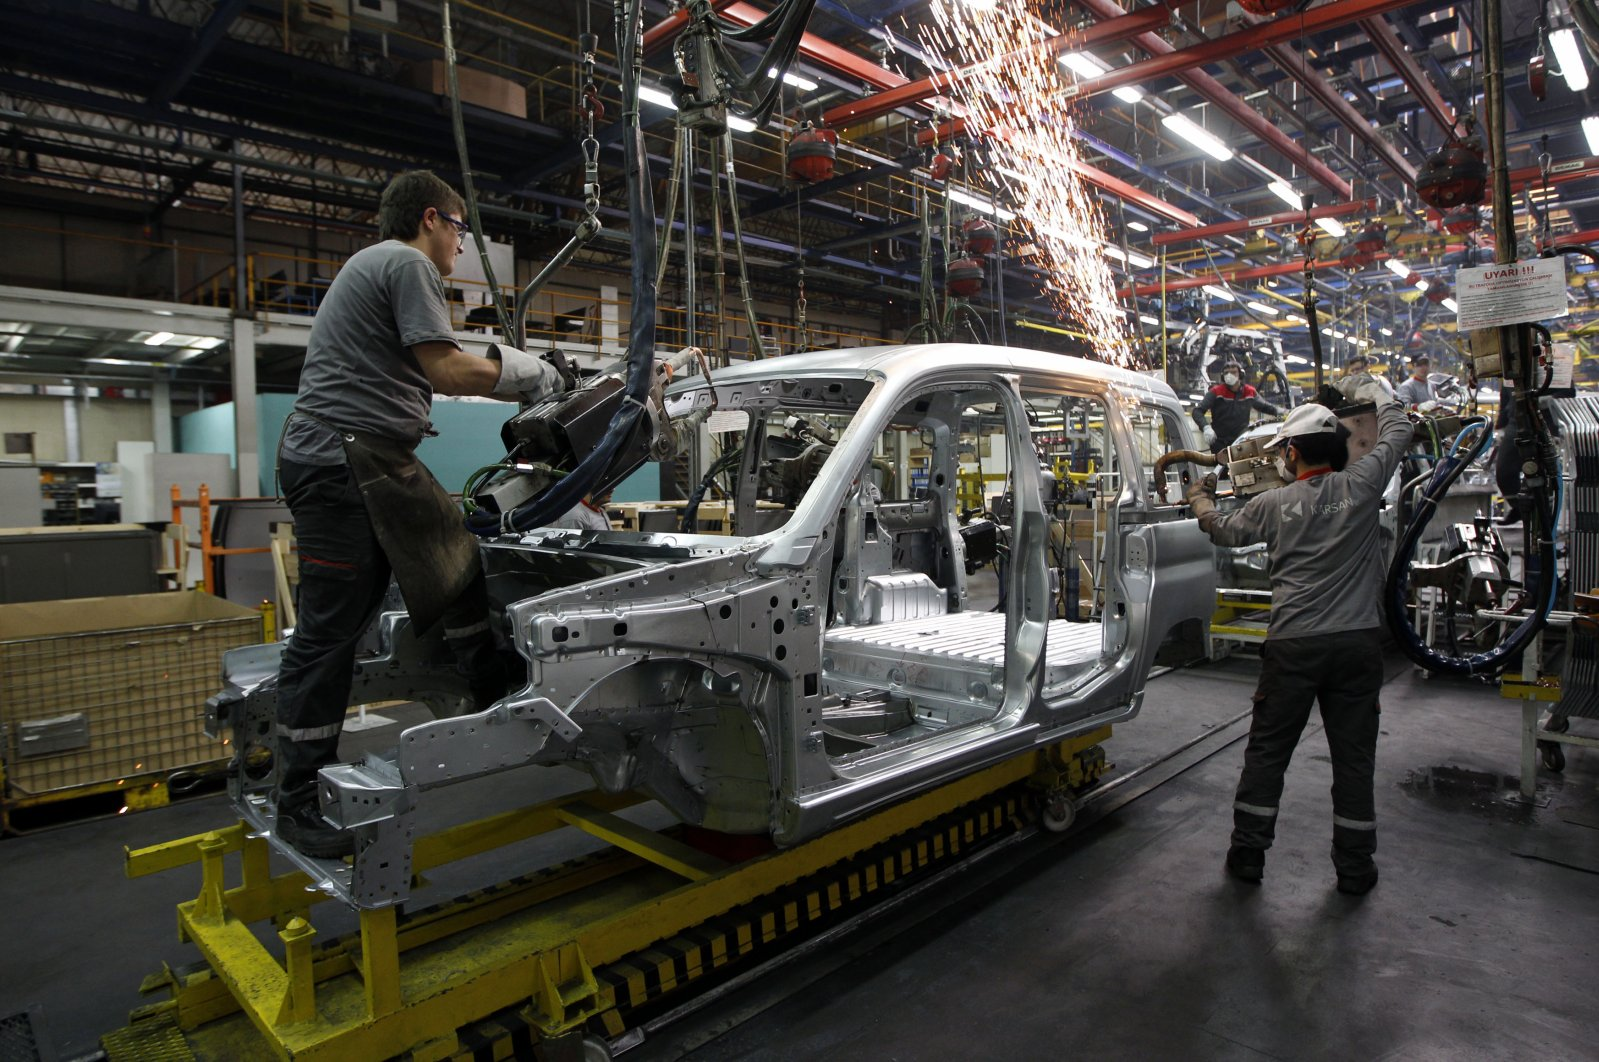 Employees work on the assembly line of the Karsan automotive factory in Bursa, Turkey. (Reuters Photo)